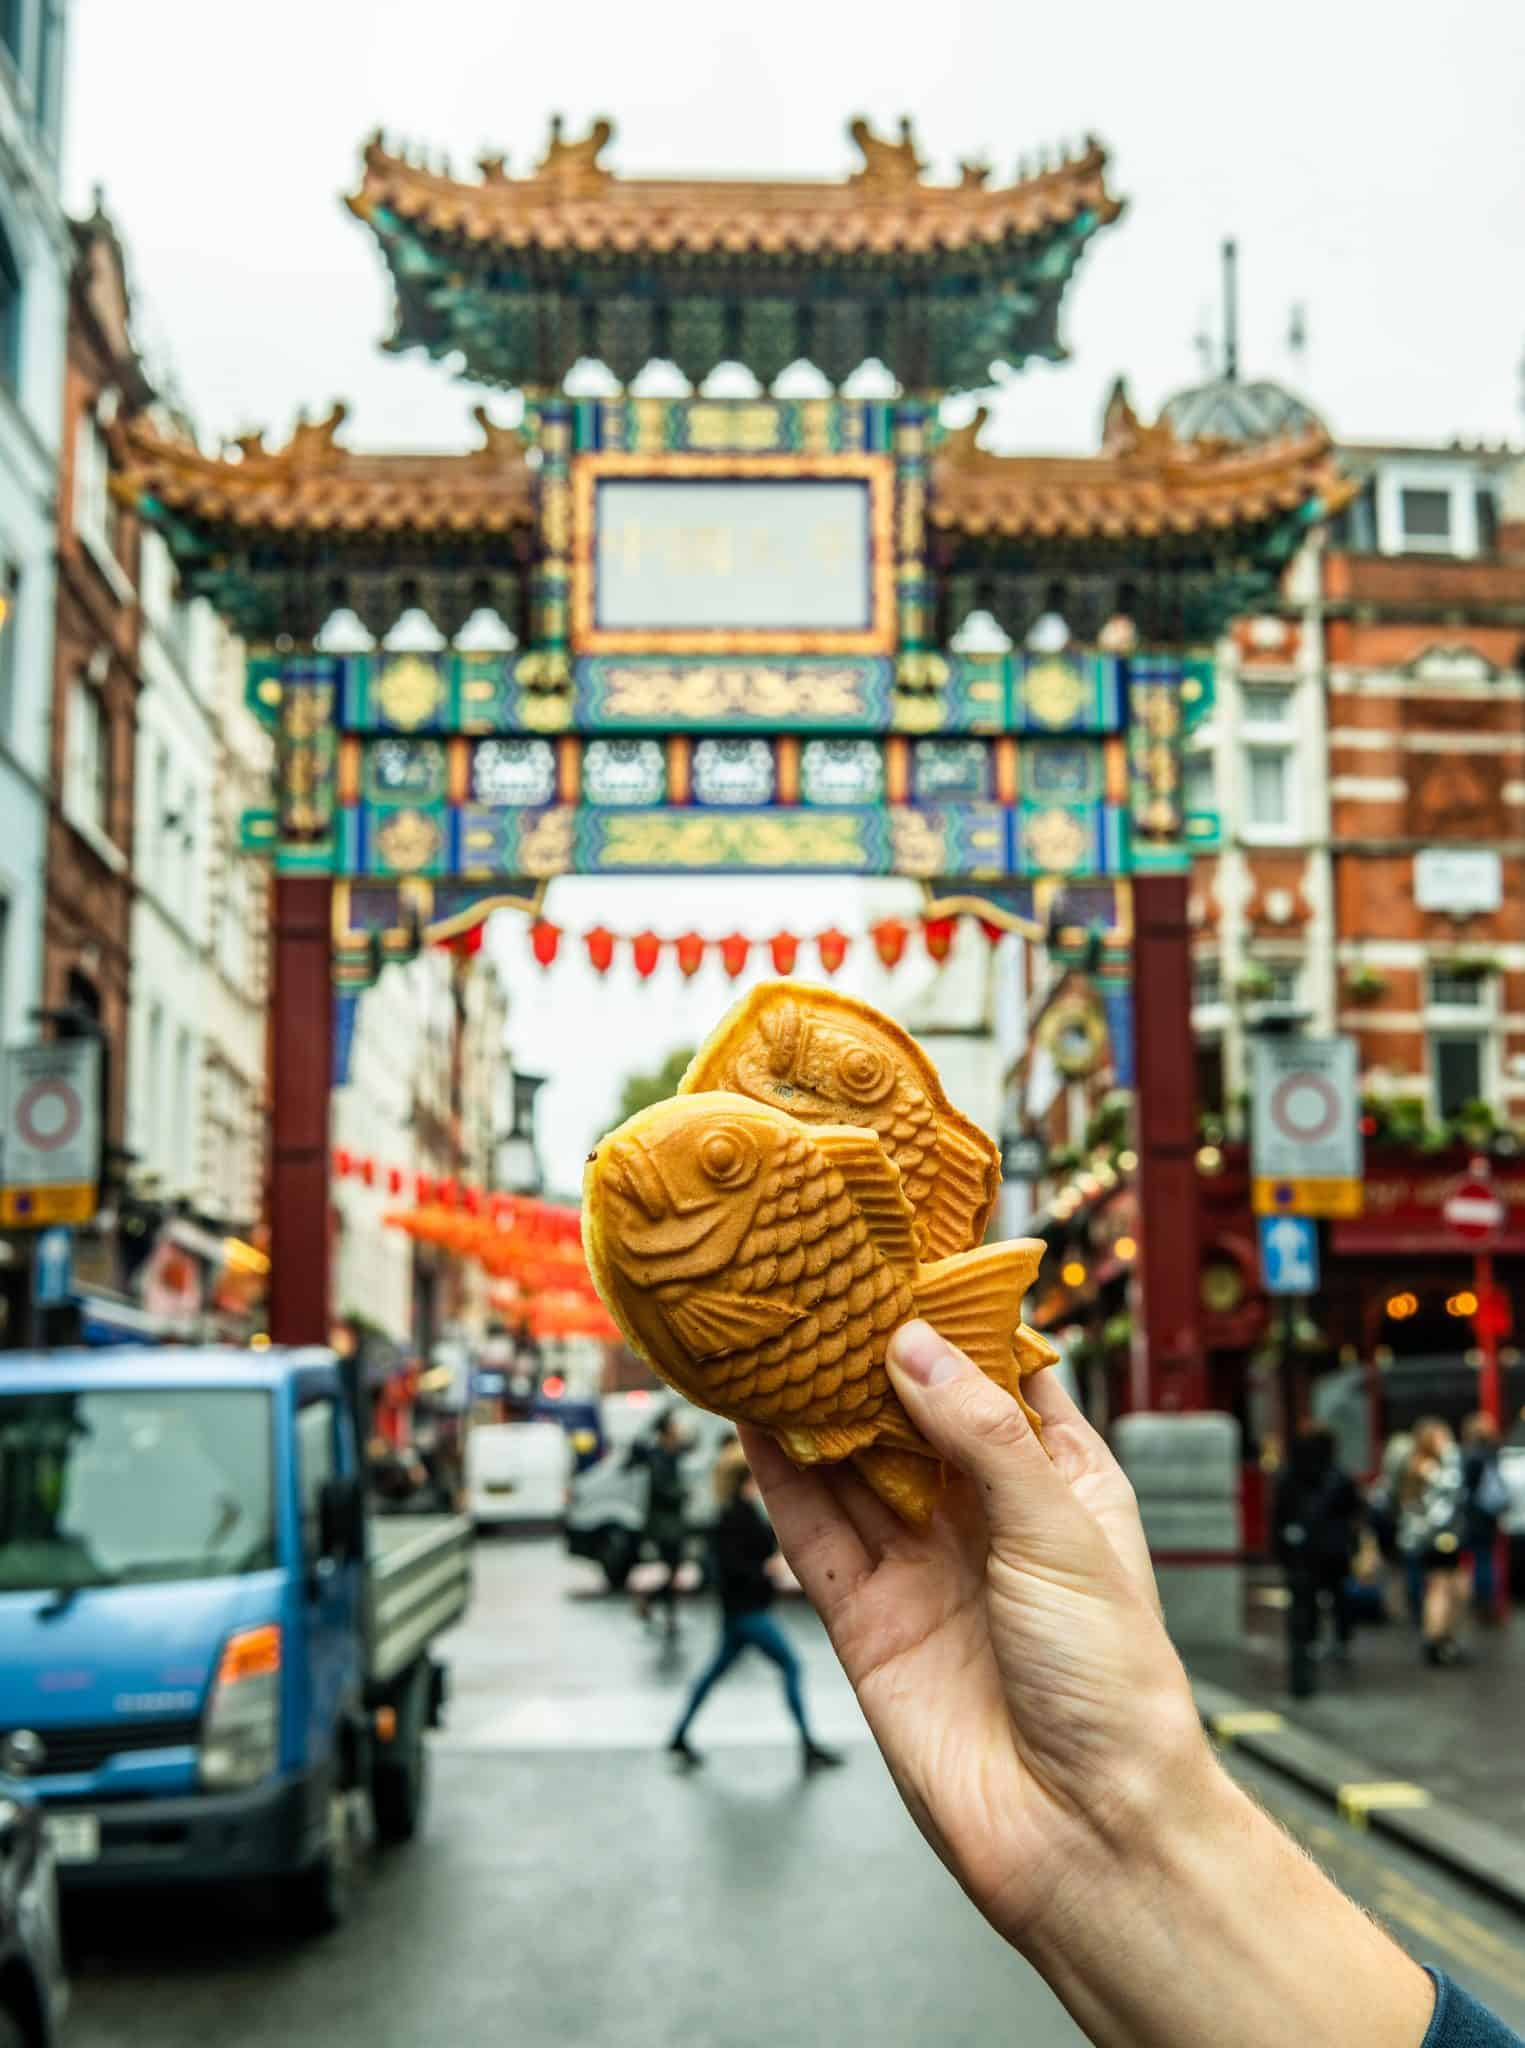 London Food and Drink Photography - Chinatown London 1.11.19 - Nic Crilly-Hargrave-326